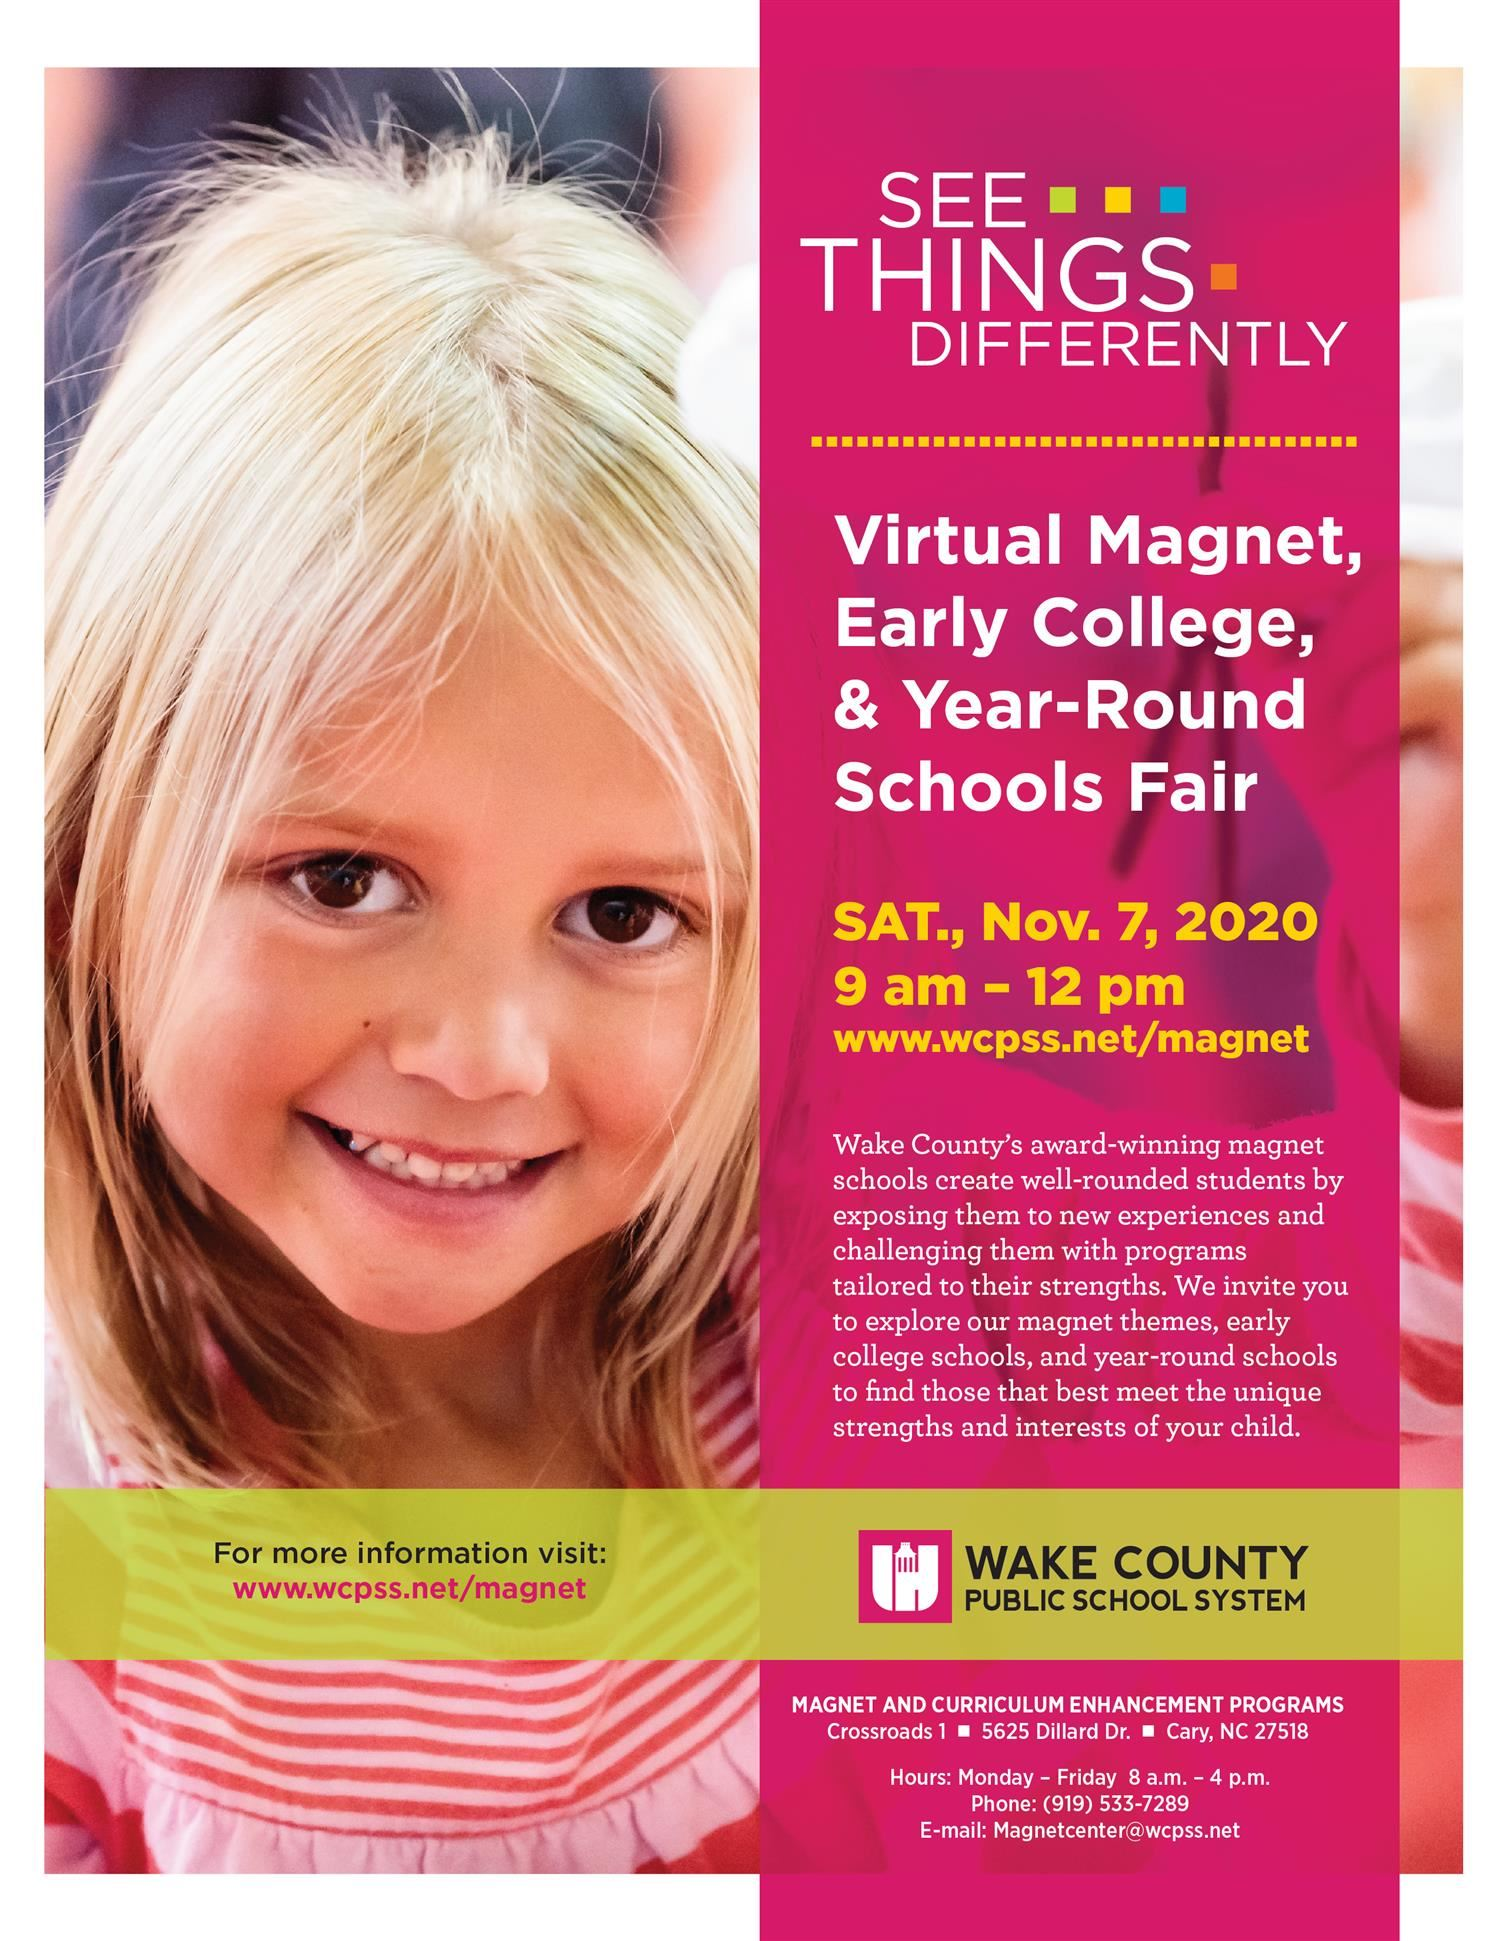 Virtual MAGNET, EARLY COLLEGE AND YEAR-ROUND SCHOOLS FAIR